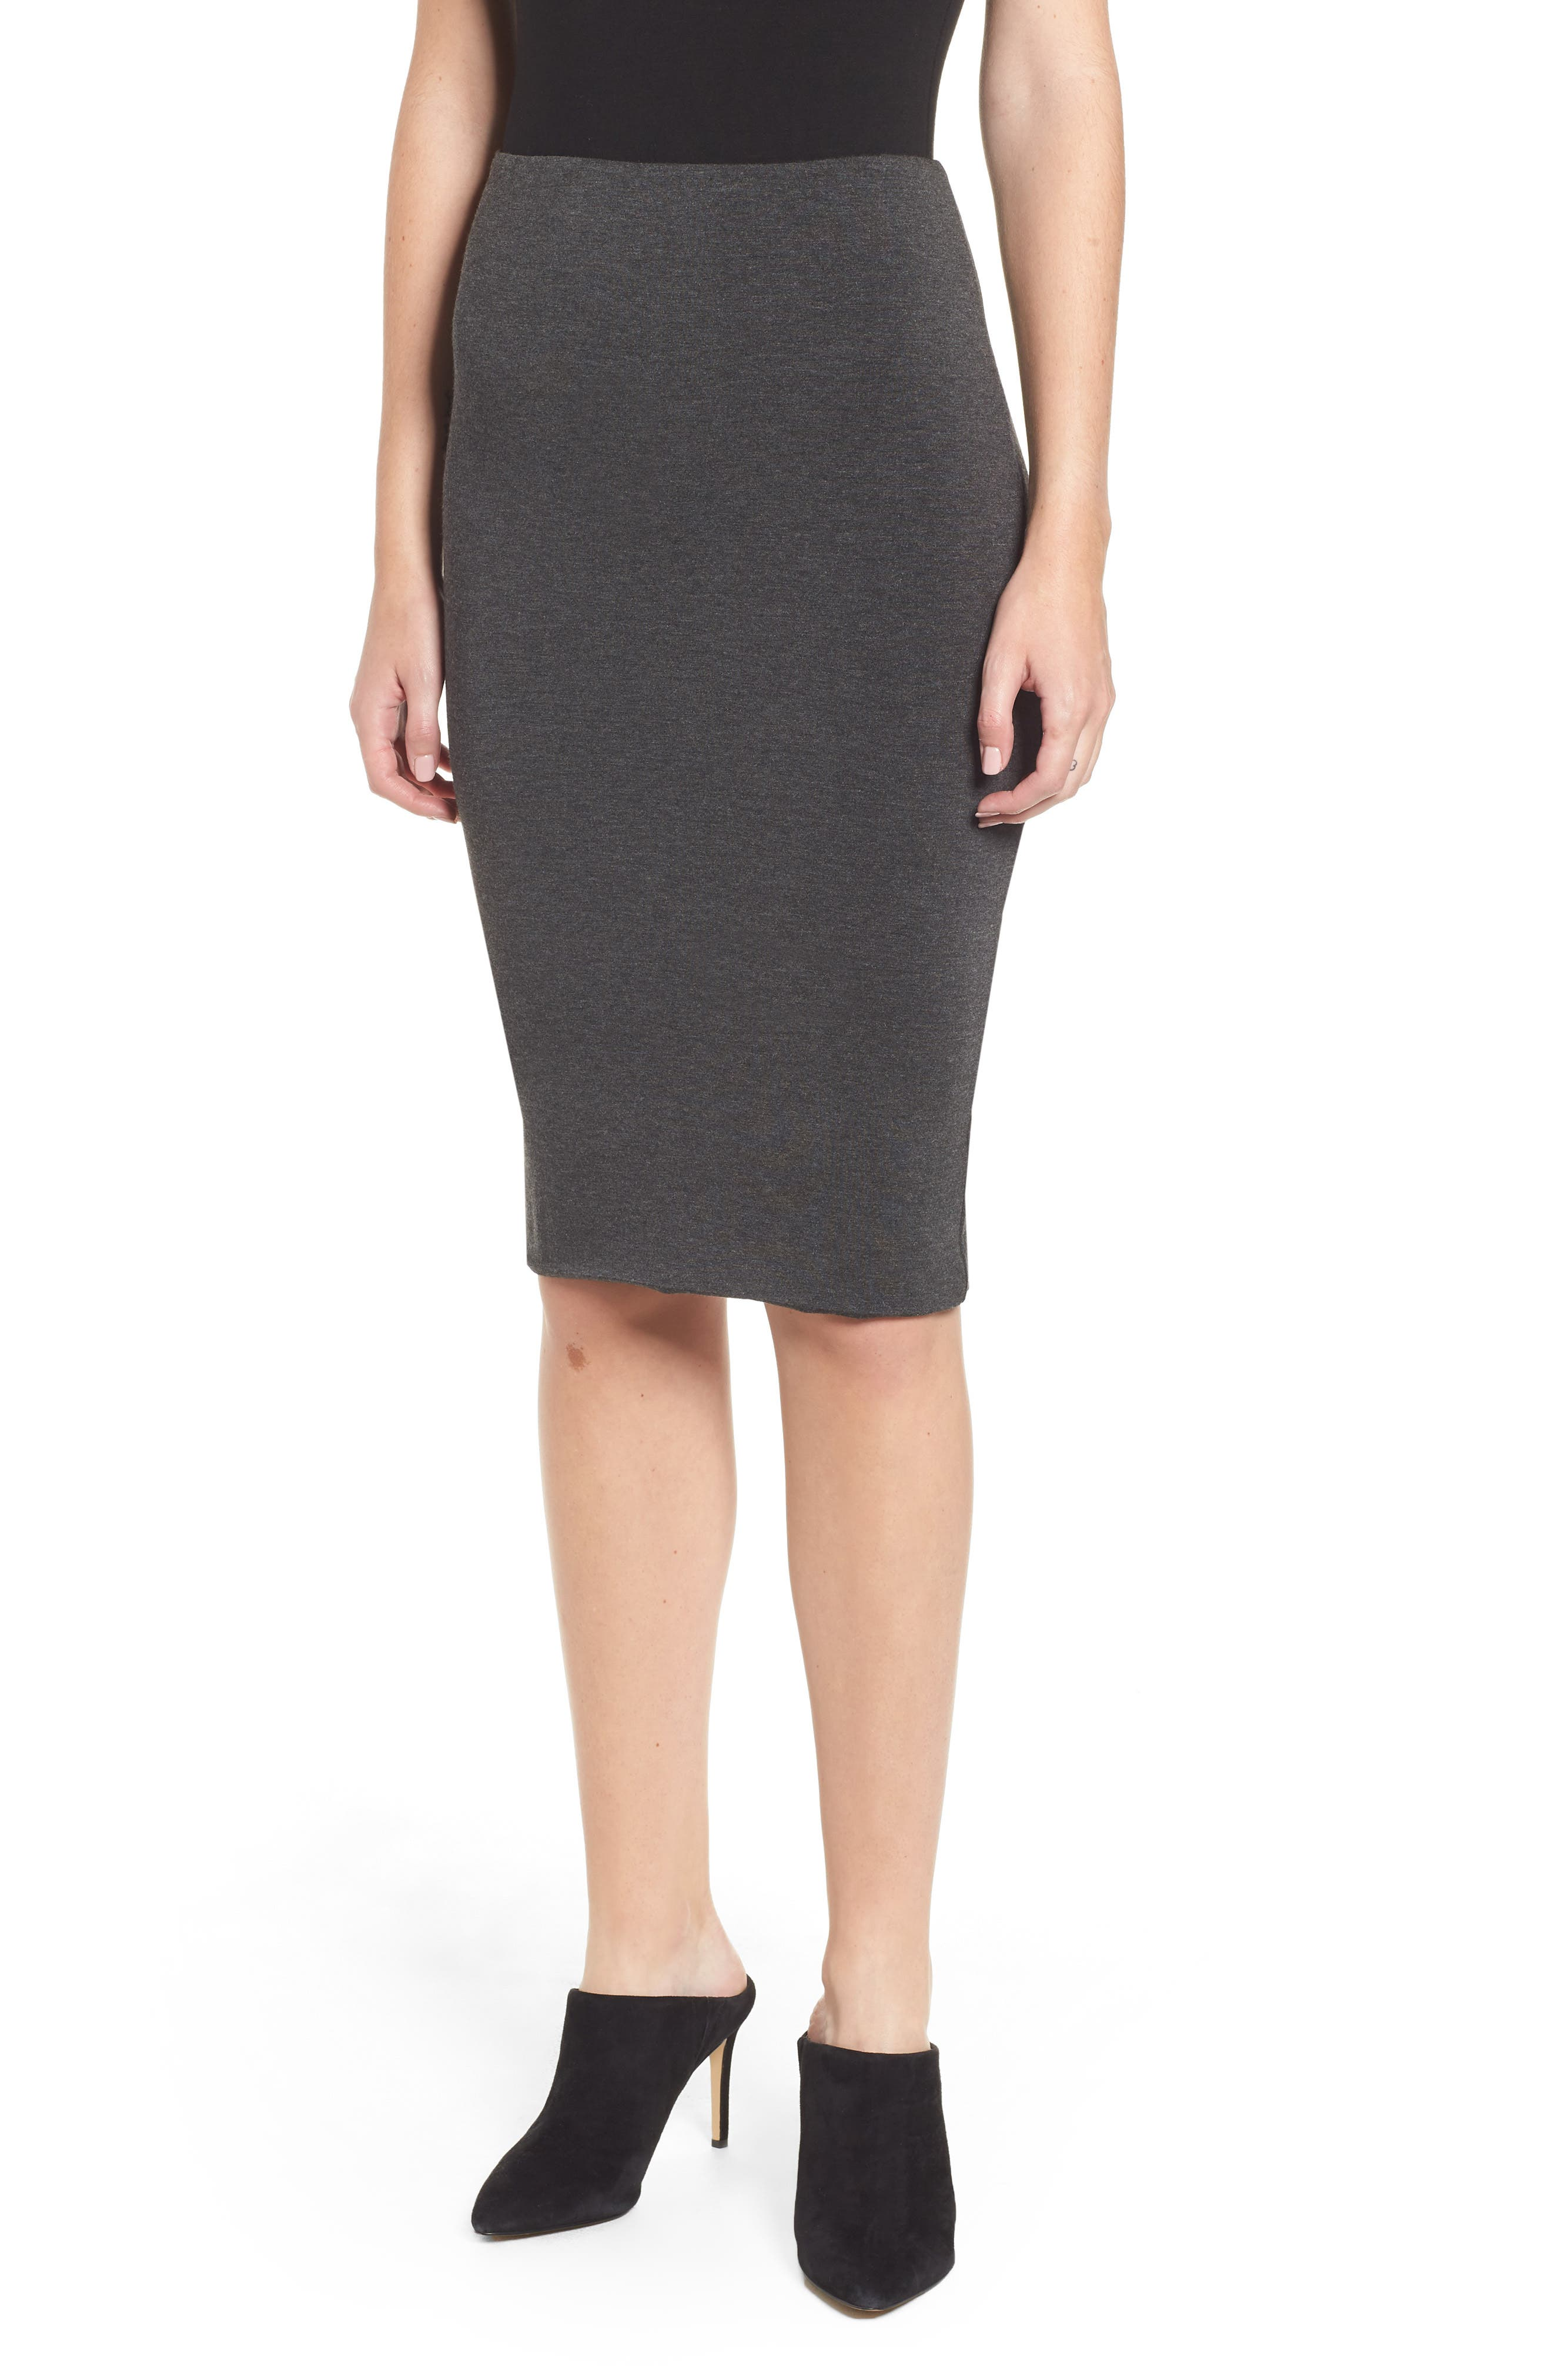 AMOUR VERT, 'Yuma' Stretch Knit Skirt, Main thumbnail 1, color, ANTHRACITE